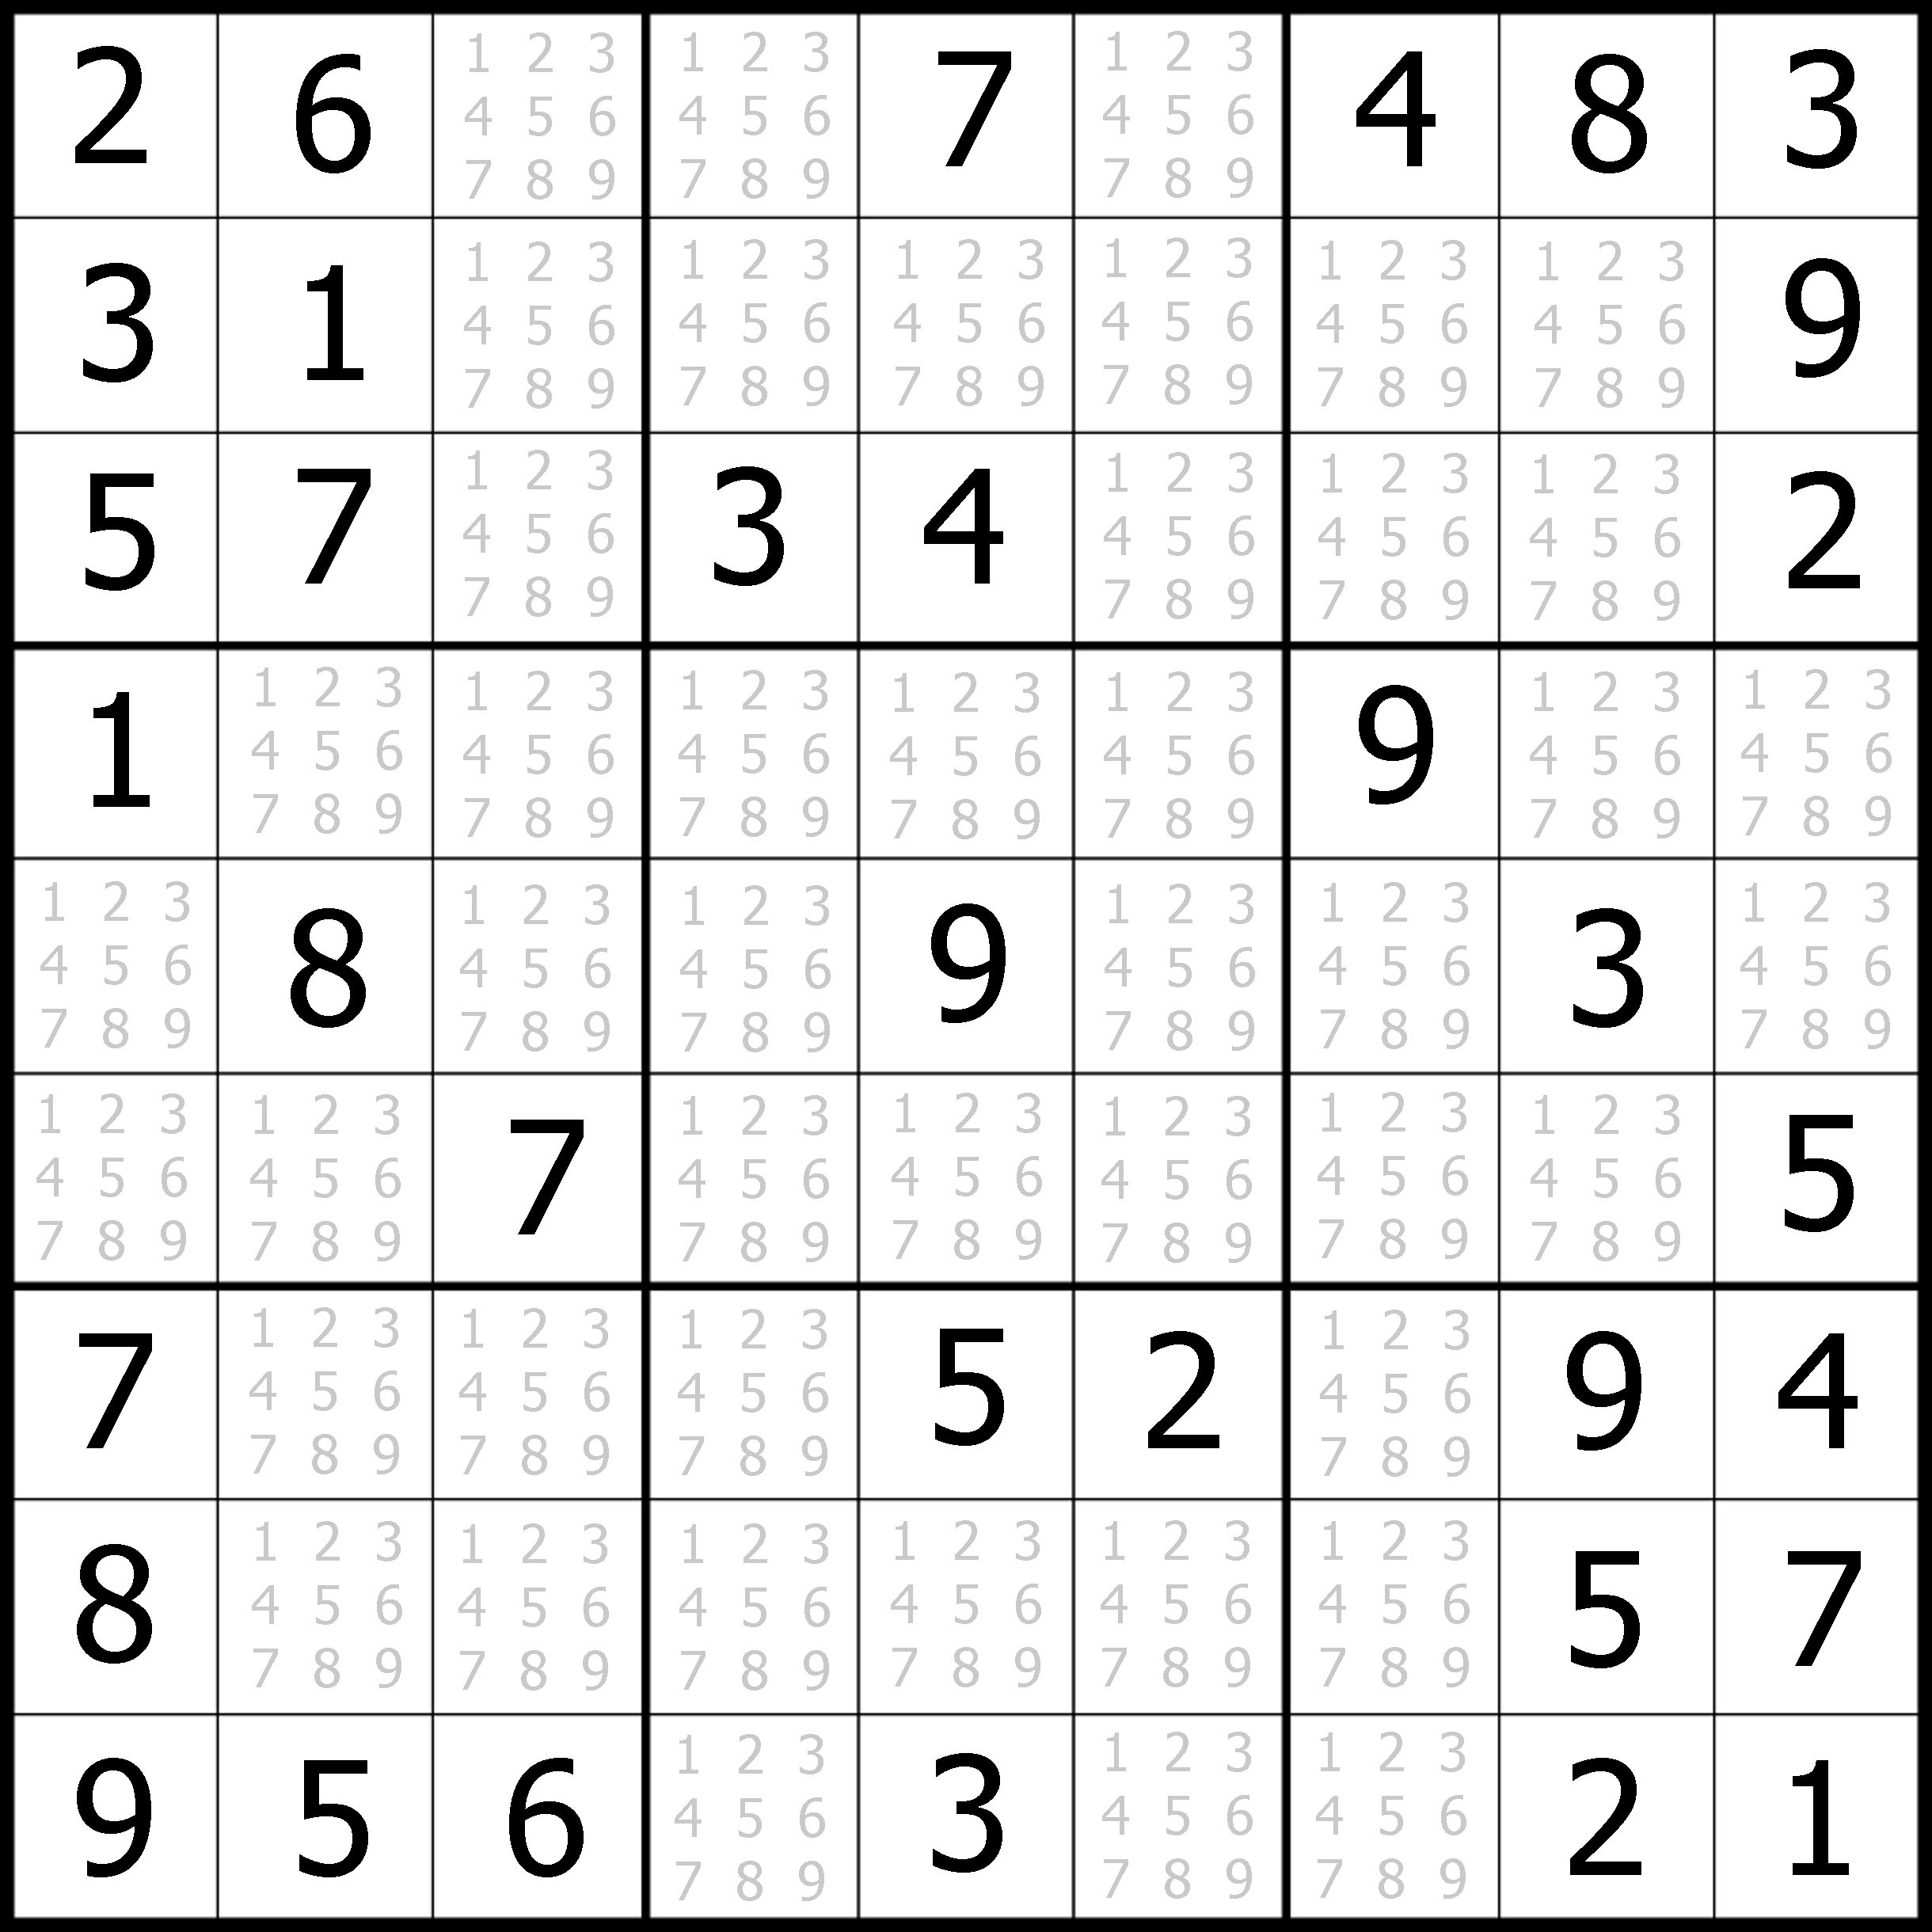 Easy Sudoku Printable | Kids Activities - Free Printable Sudoku With Answers